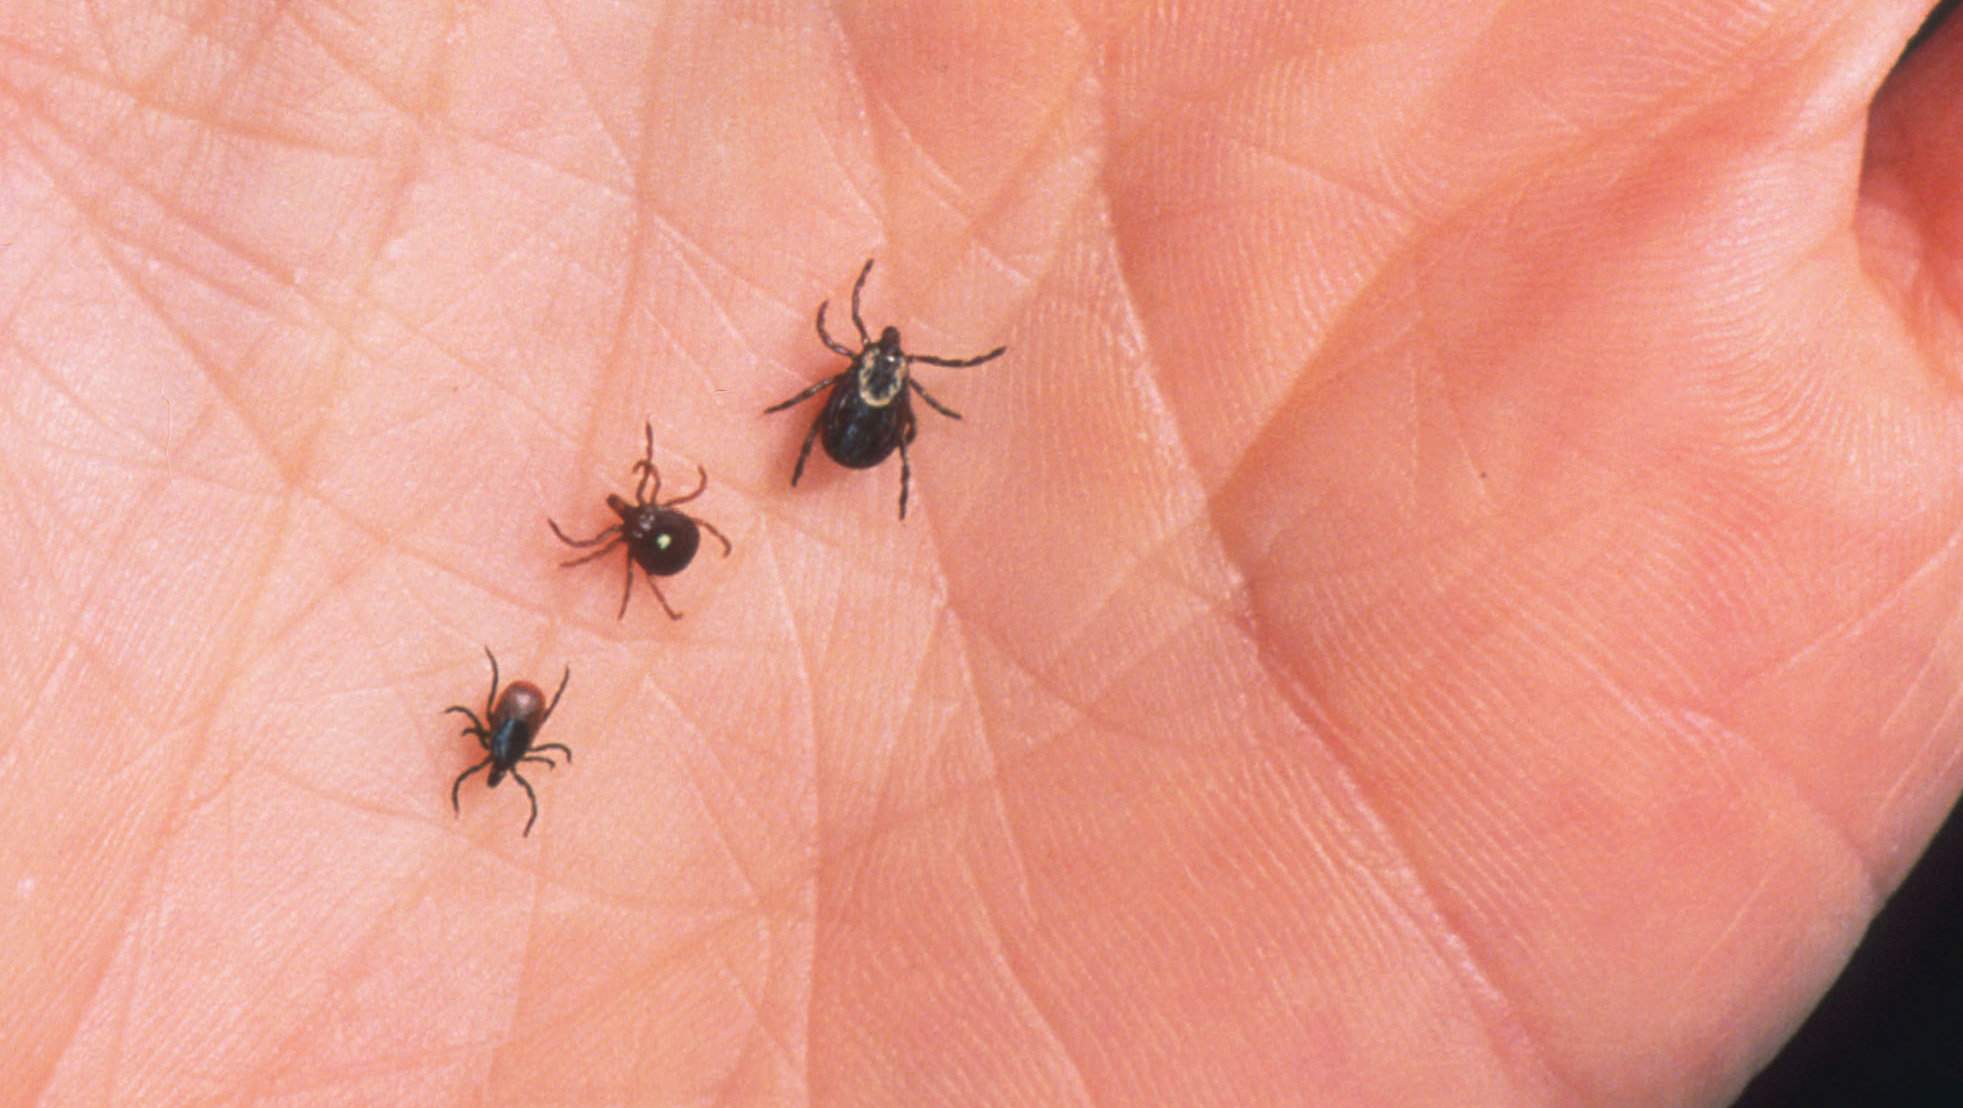 Likelihood of tick bite to cause red meat allergy could be higher than previously though